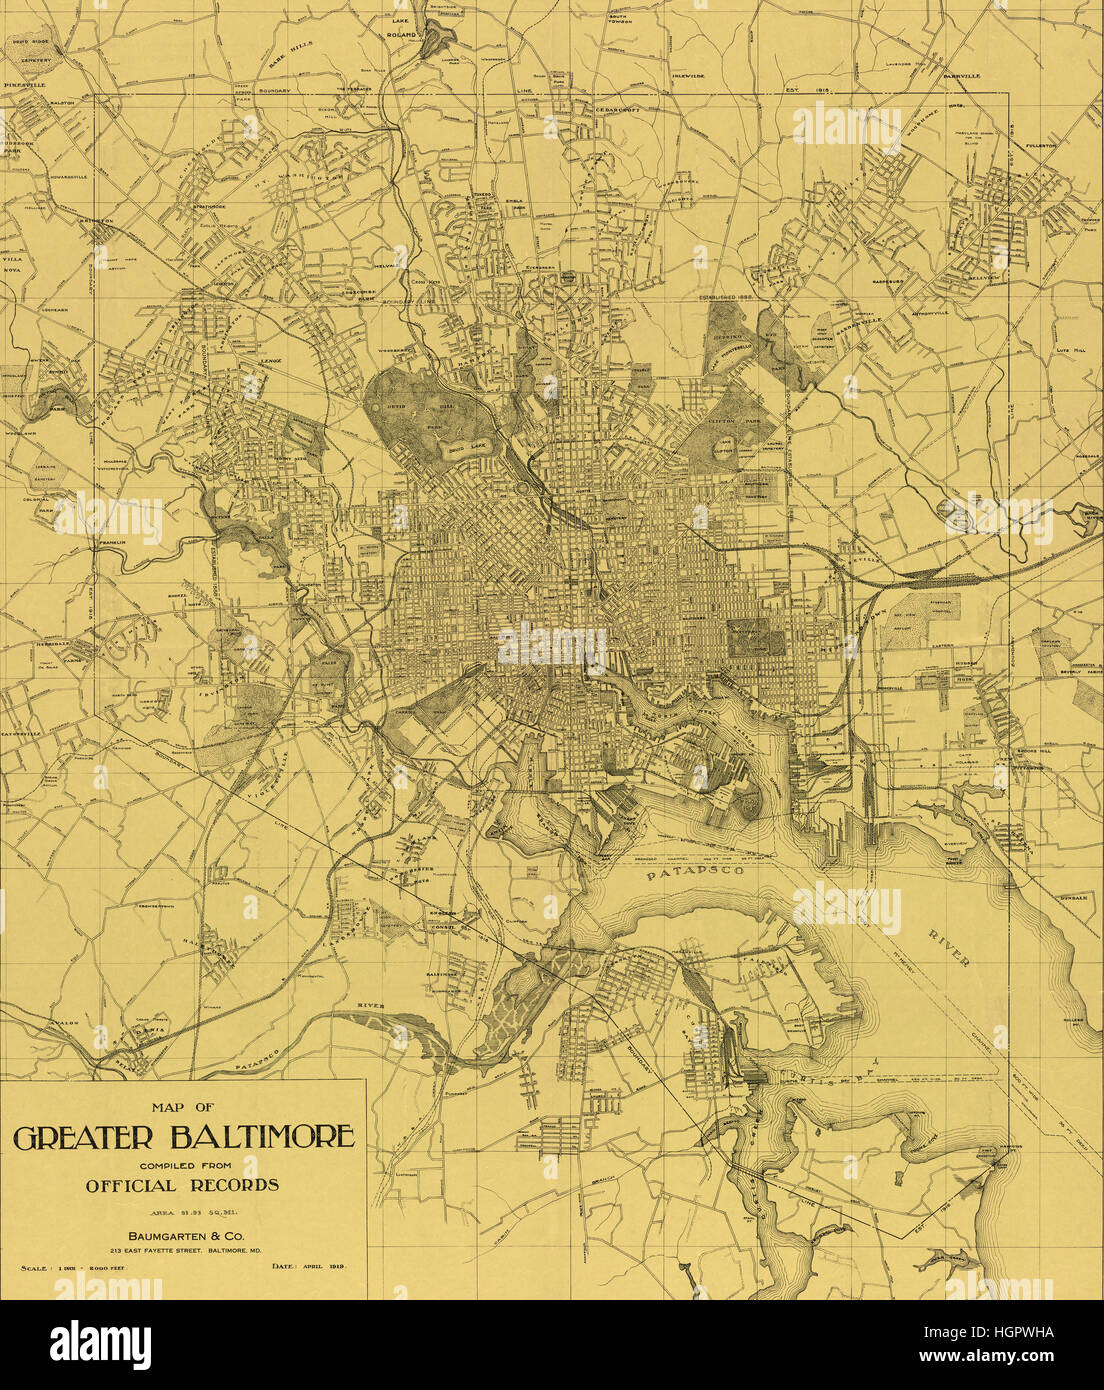 Vintage Baltimore Map 1919 - Stock Image